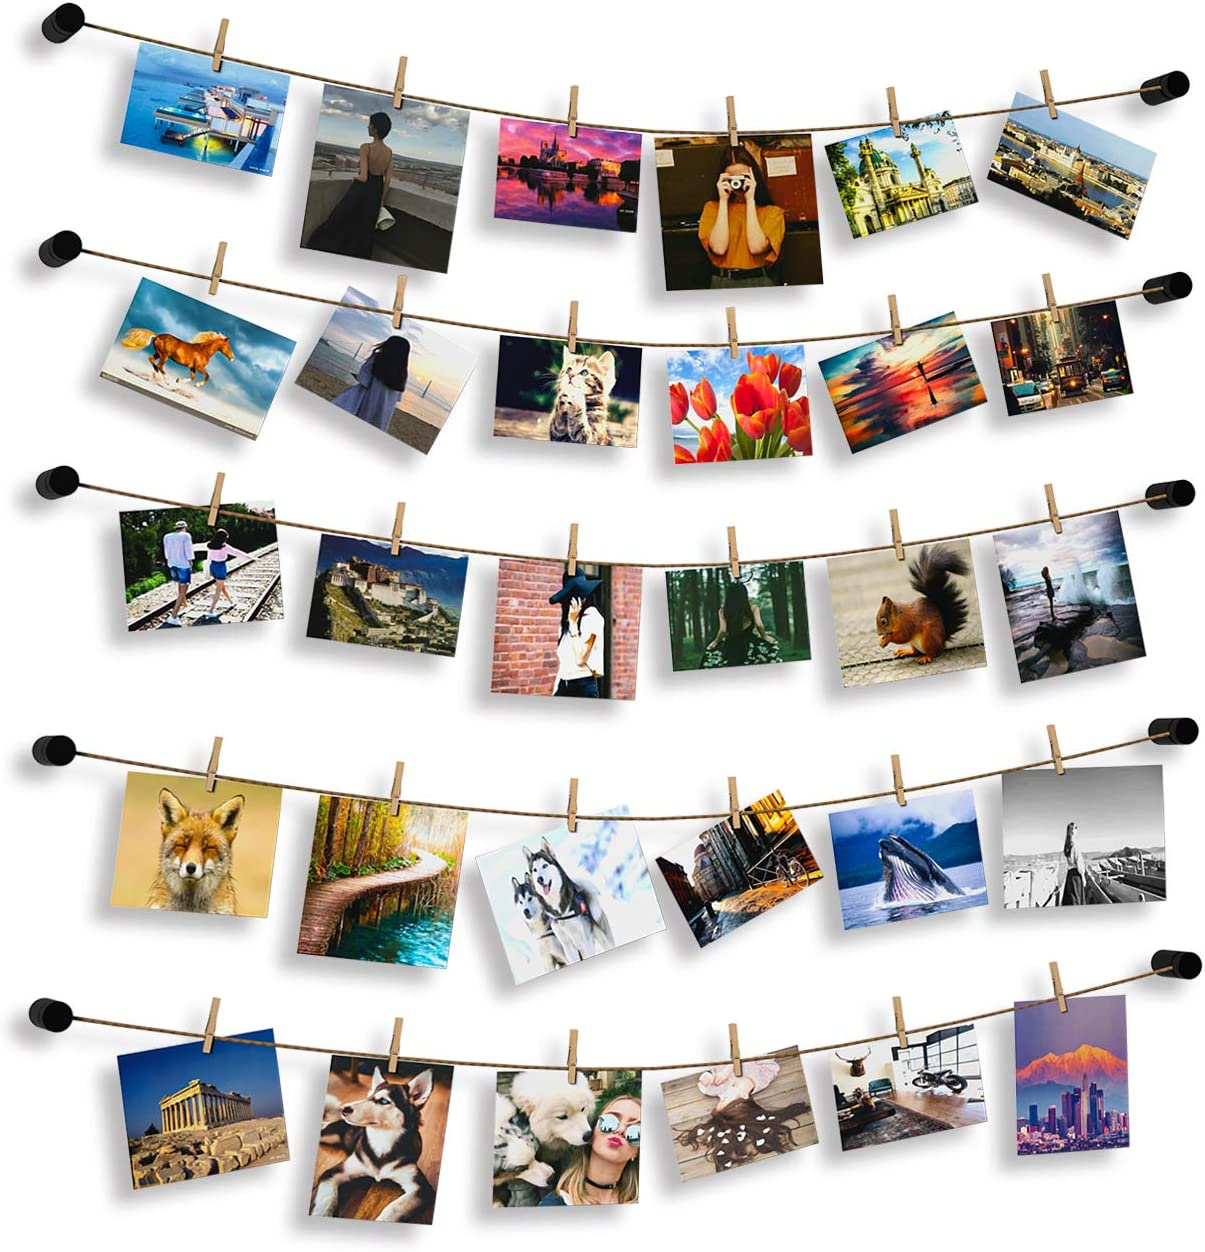 HOSOM String Picture Hanger with Clips, 16.5 FT String Photo Display for Bedroom, Wall Photo Display with 30 Clips for Hanging Pictures